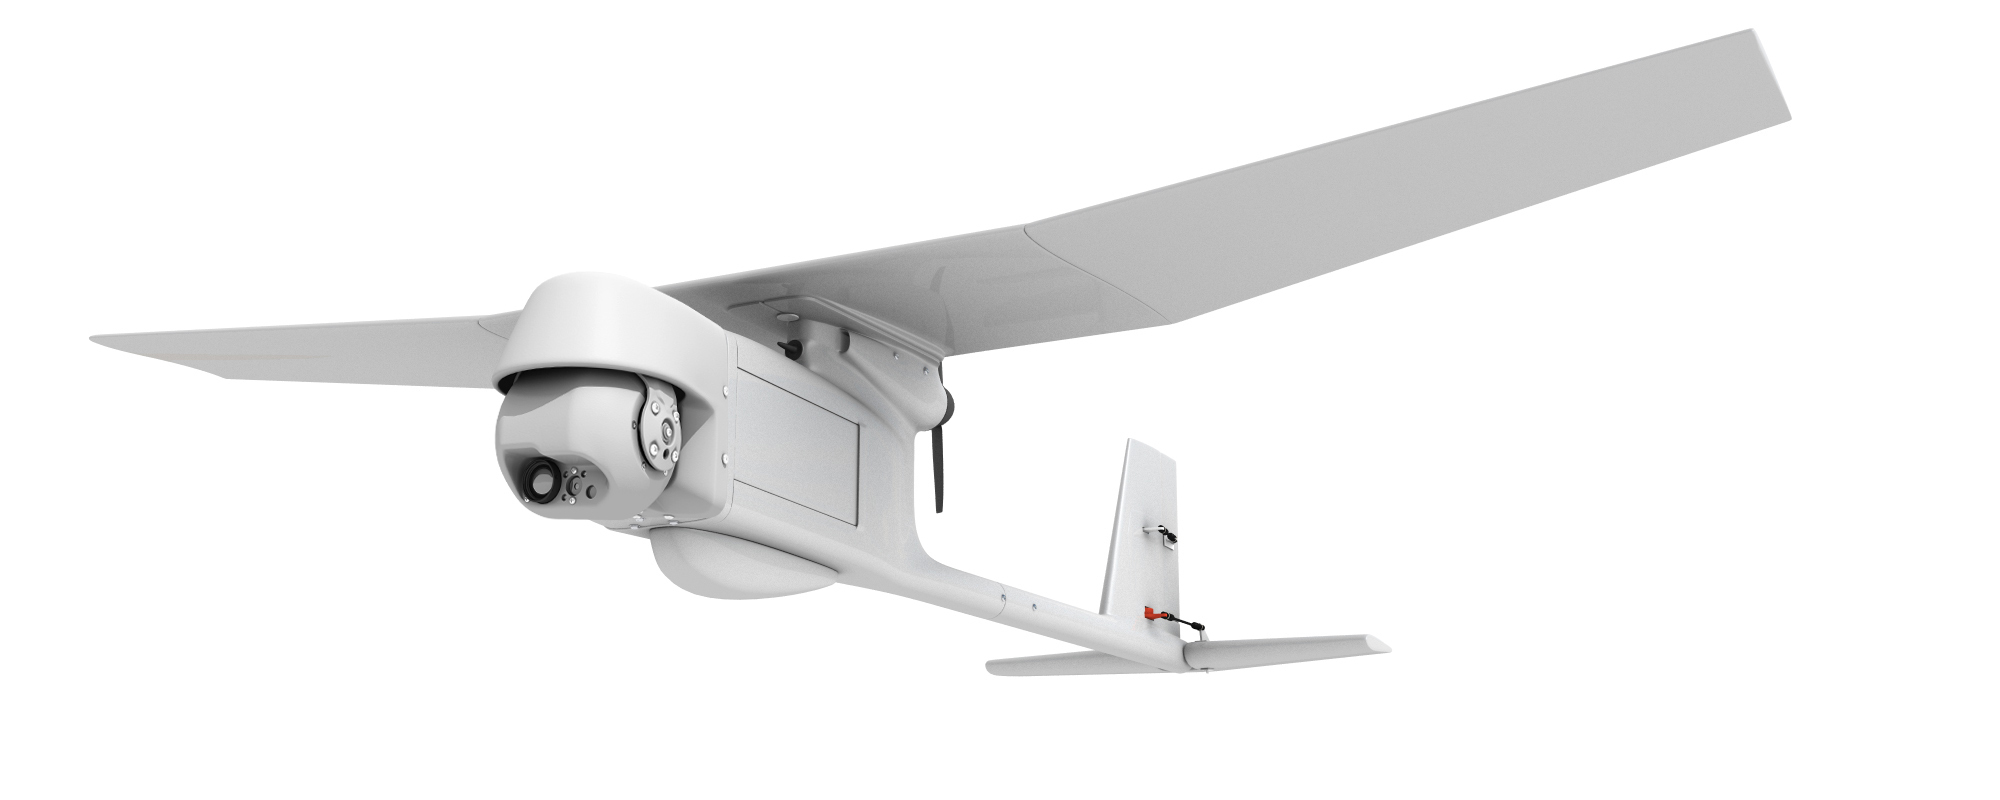 Sensor laden Raven tactical UAS can be hand-launched for day or night observation